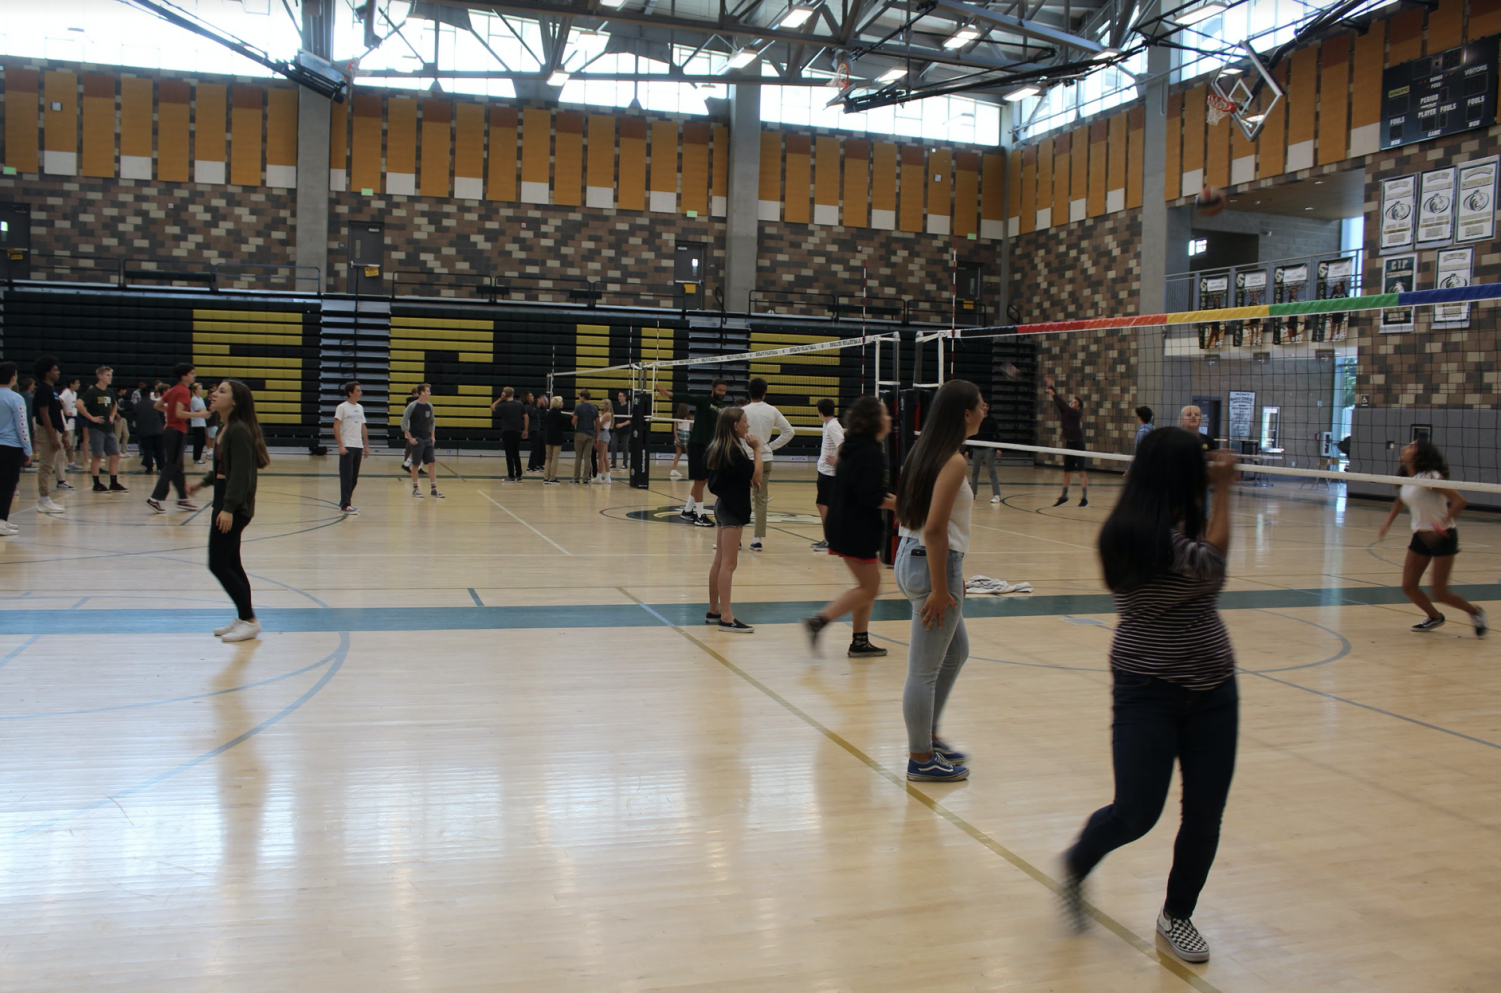 Students+play+volleyball+in+the+gym+during+lunchtime.+Most+days+at+lunch%2C+the+gym+is+open+for+everyone+to+play+volleyball.